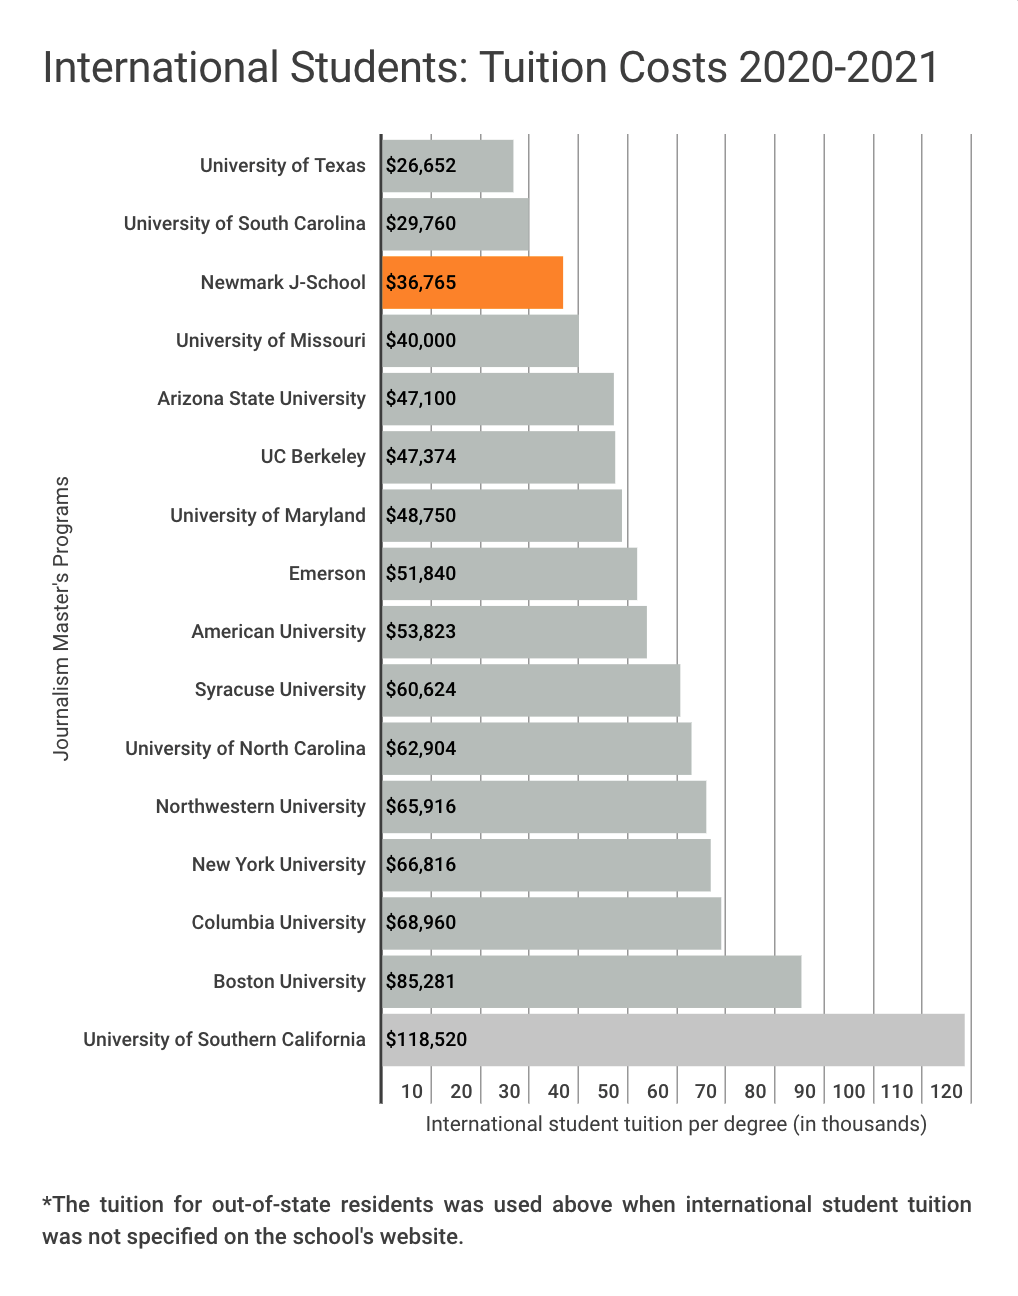 Tuition comparison chart for international students in 2020-2021 academic year. This chart shows that Newmark J-School has the third lowest tuition for international students among 16 of the most popular journalism graduate programs in the U.S. Only the University of Texas at $26,652 and the University of South Carolina at $29,760 are lower than Newmark J-School's $36,765. The costliest tuition for international students shown in this chart is The University of Southern California at $118,520.